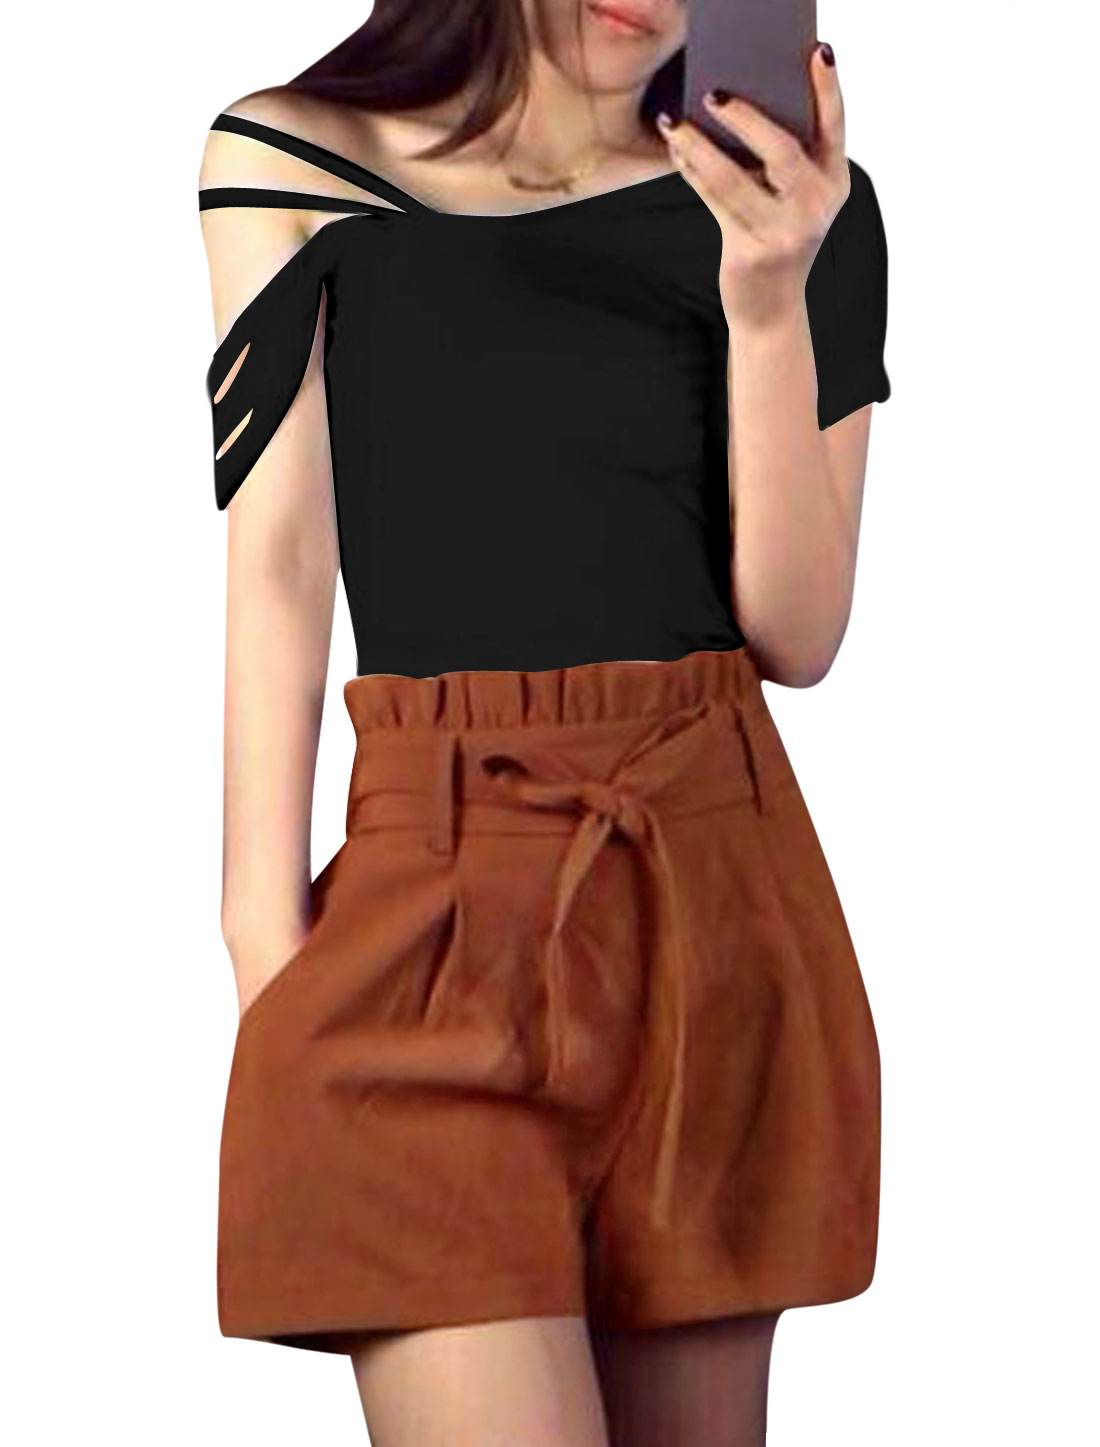 Lady Strappy Design Casual Top Black w Self Tie Waist Strap Shorts Rust XS